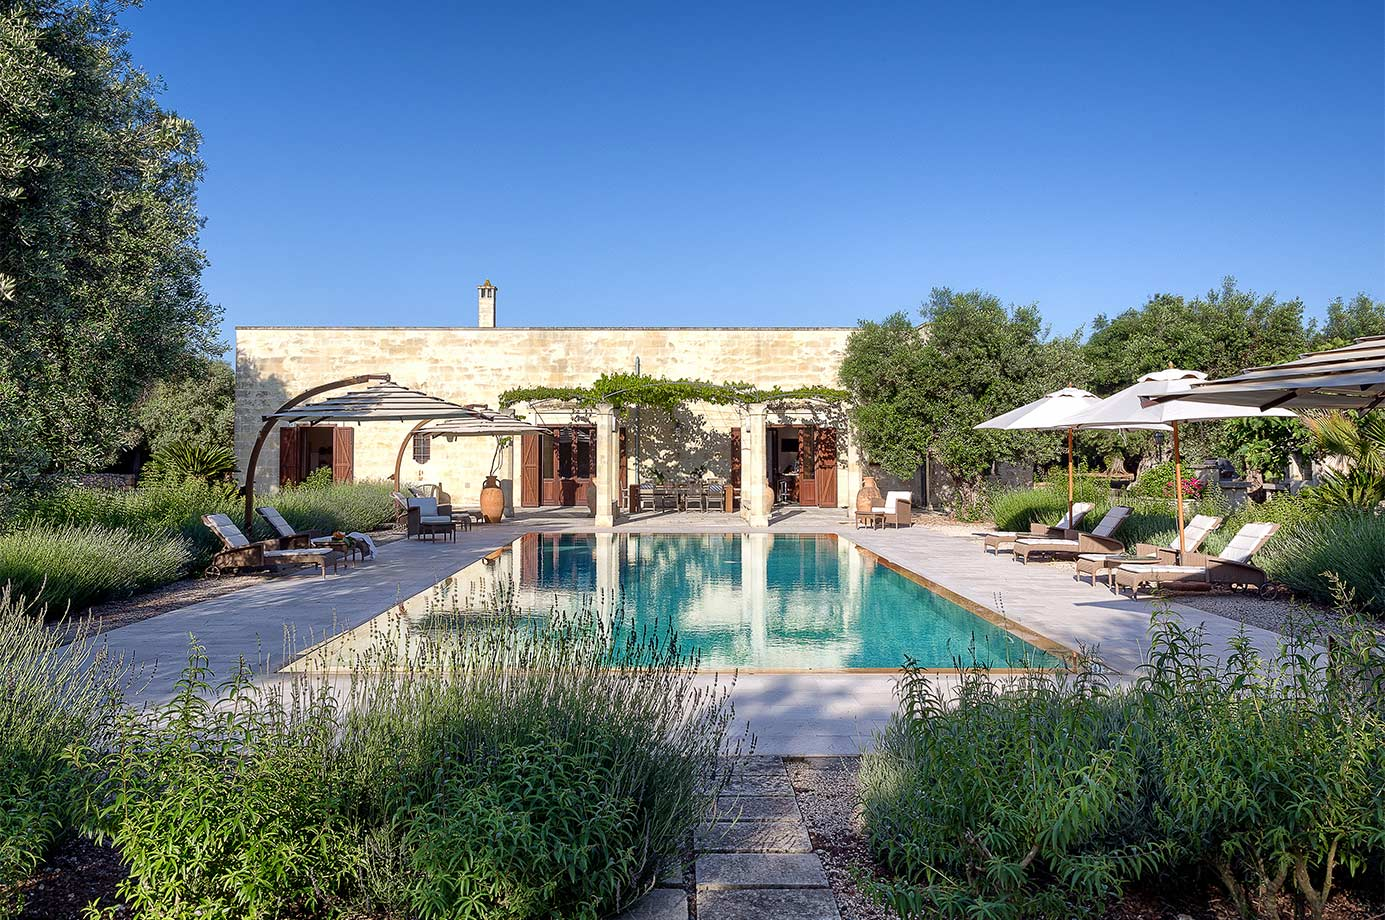 Masseria Castravelli – Beautiful Luxury Villa with pool in Puglia – Sleeps 10 – SPECIAL OFFERS